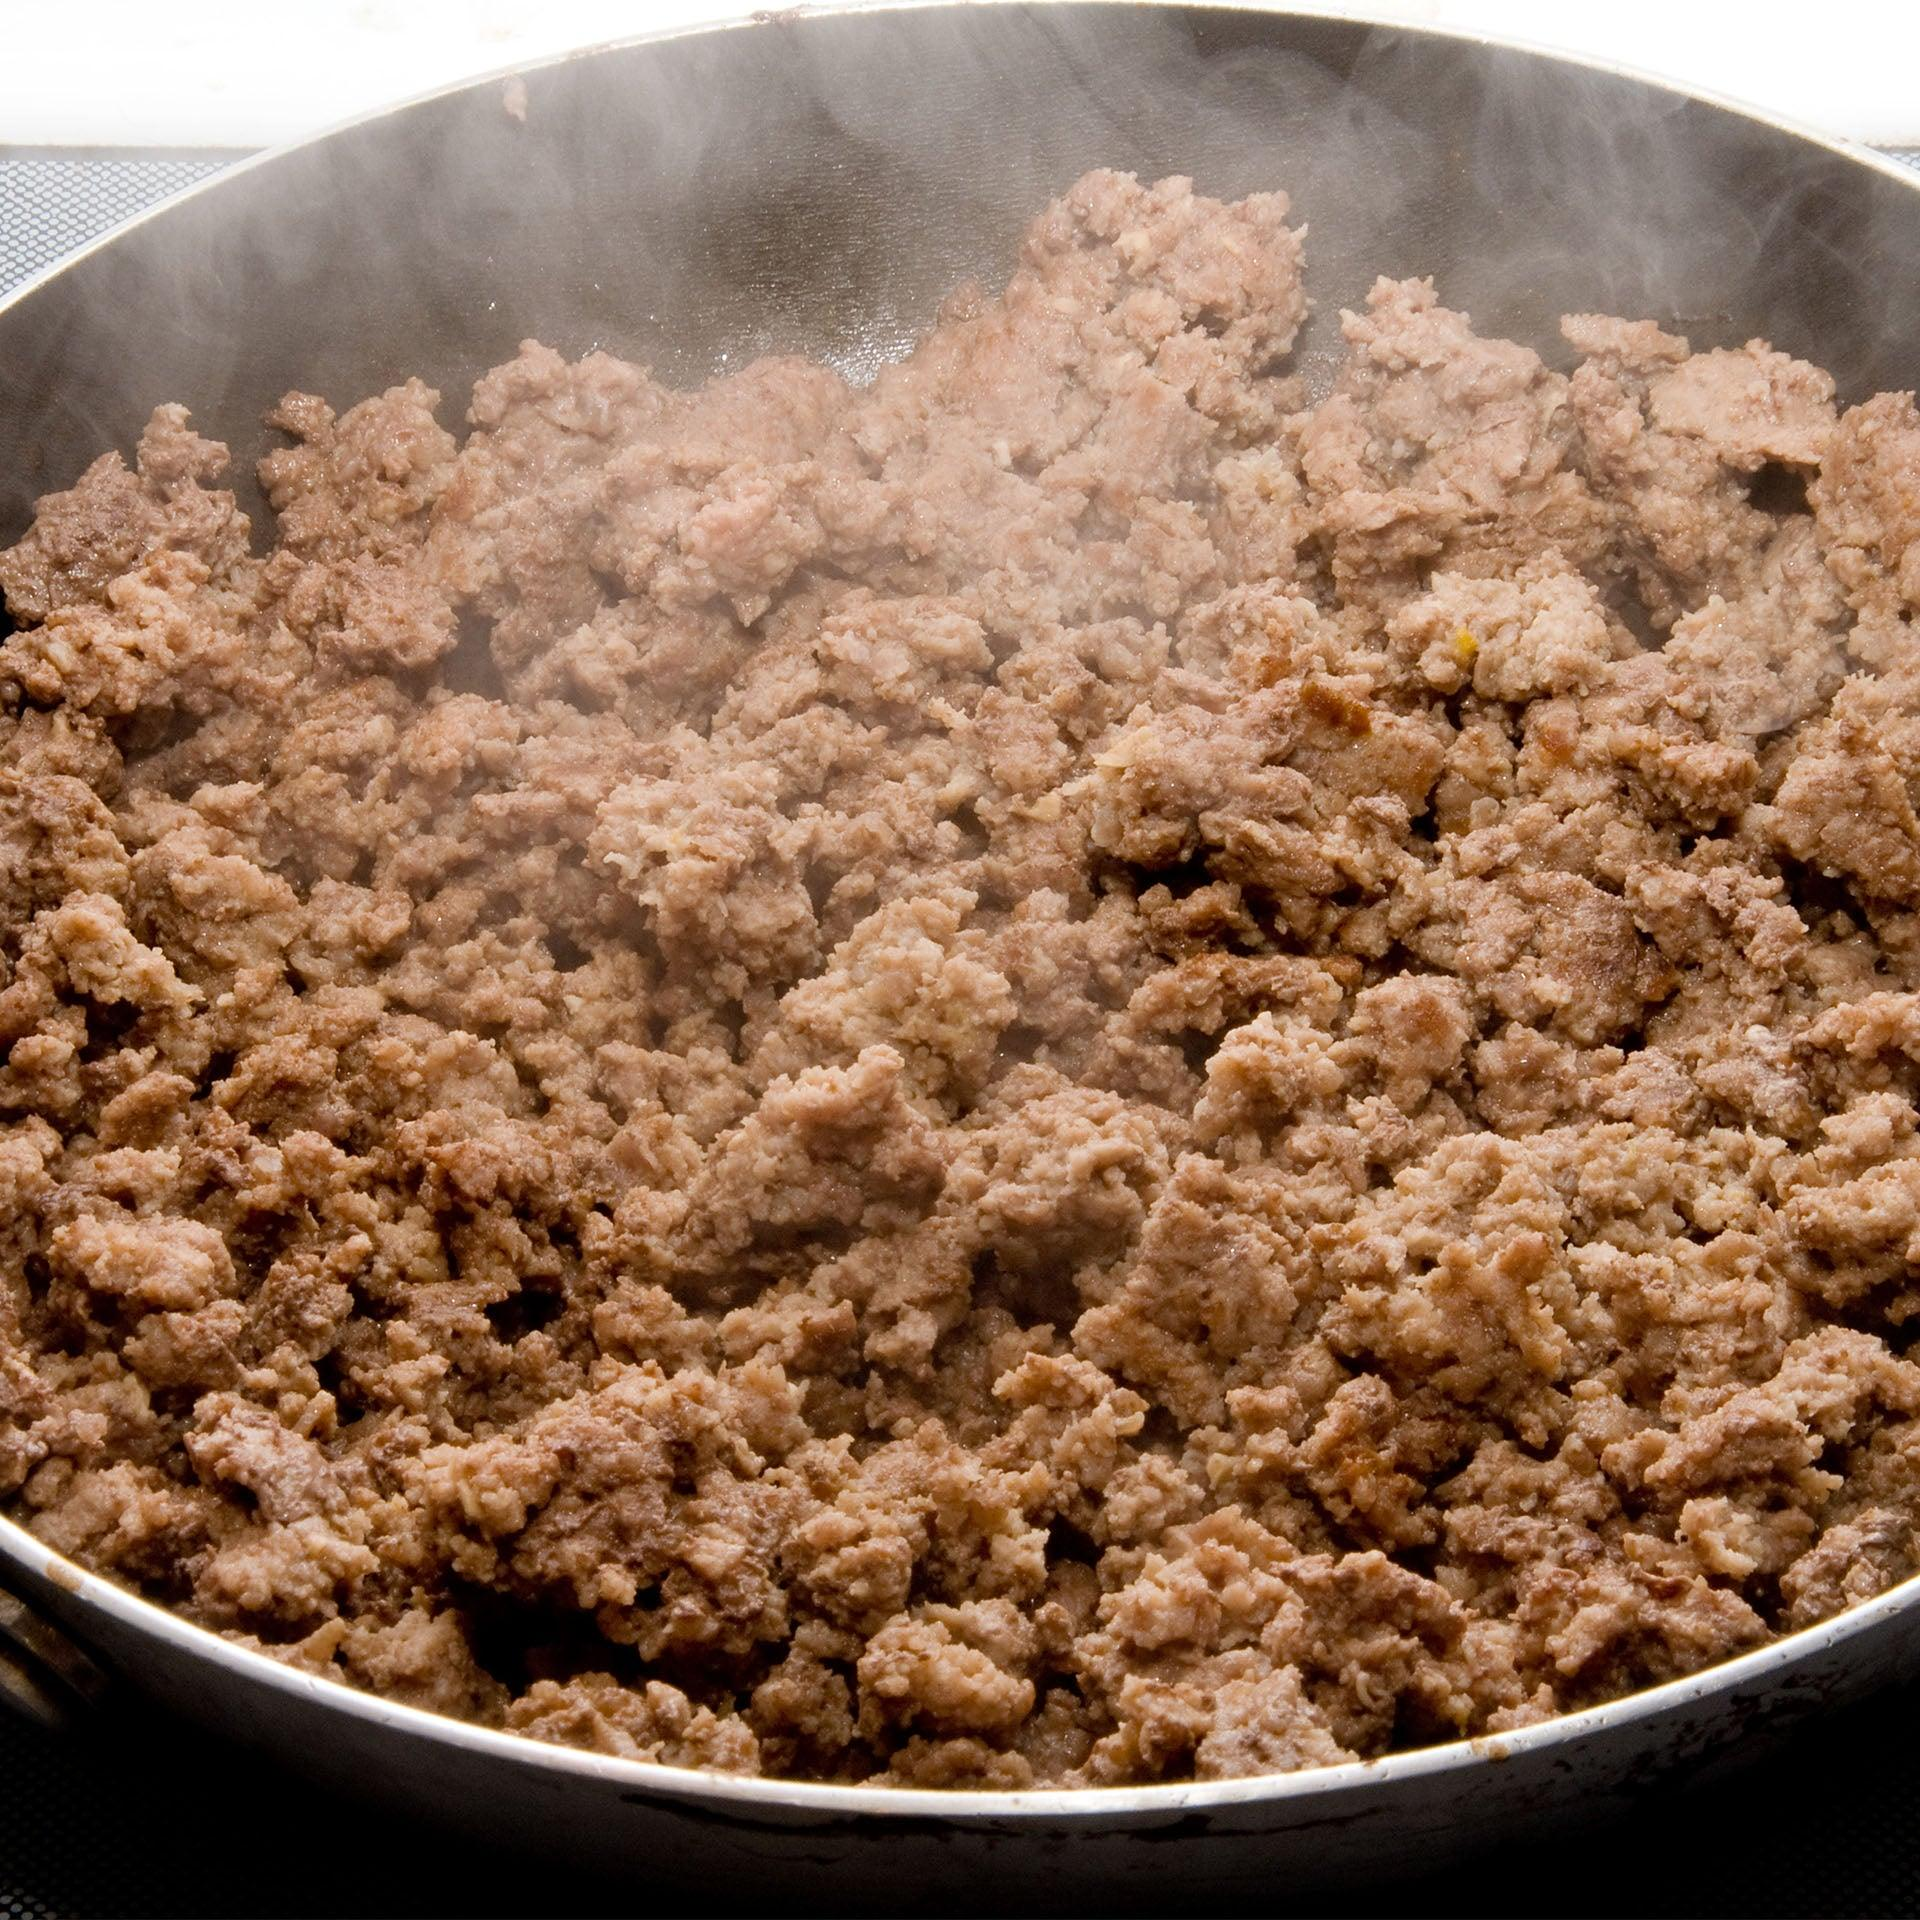 Grass-Fed Ground Beef 80/20 - $149 for 20 pounds Free Shipping